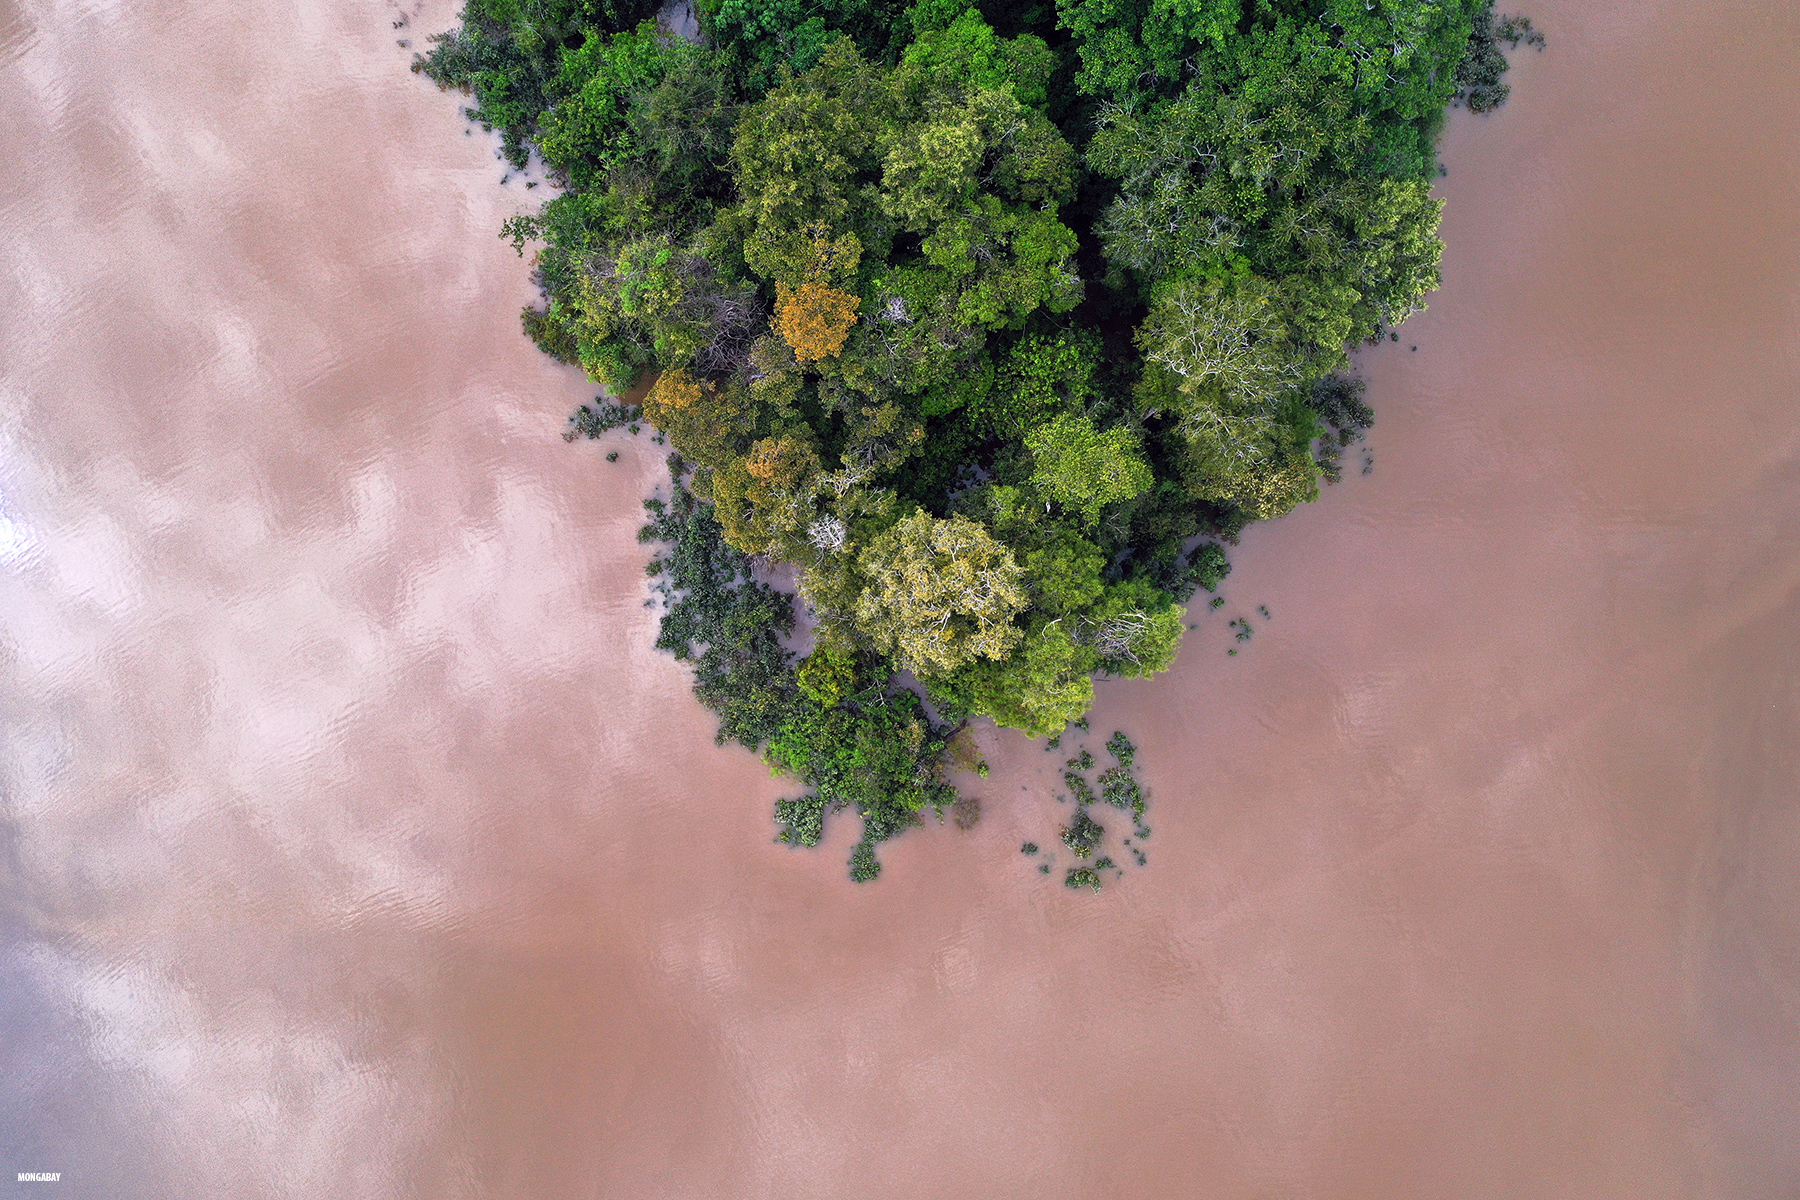 Flooded forest along the Zacambu River in the Peruvian Amazon. Photo by Rhett A. Butler for Mongabay.com